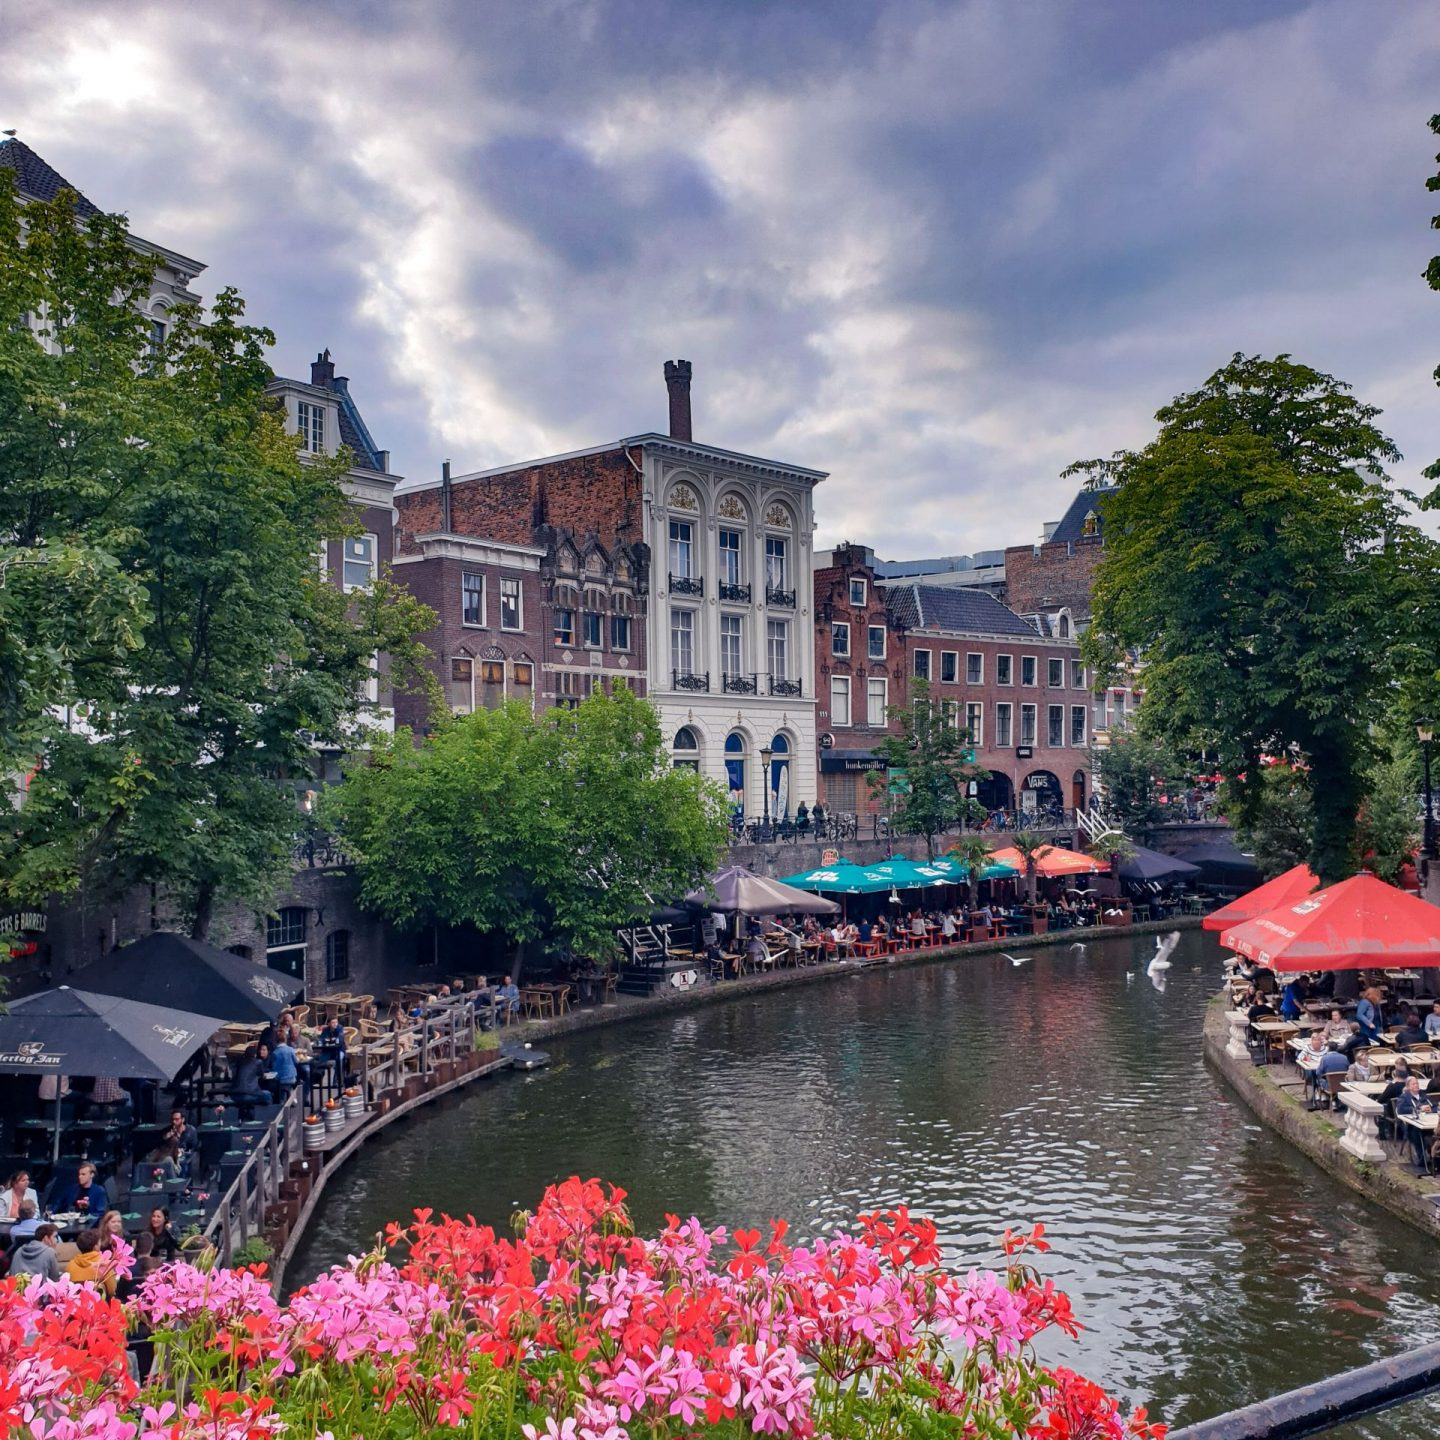 dutch cities, the netherlands, holland, dutch cities to visit besides amsterdam, utrecht, canals, water, travel, wanderlust